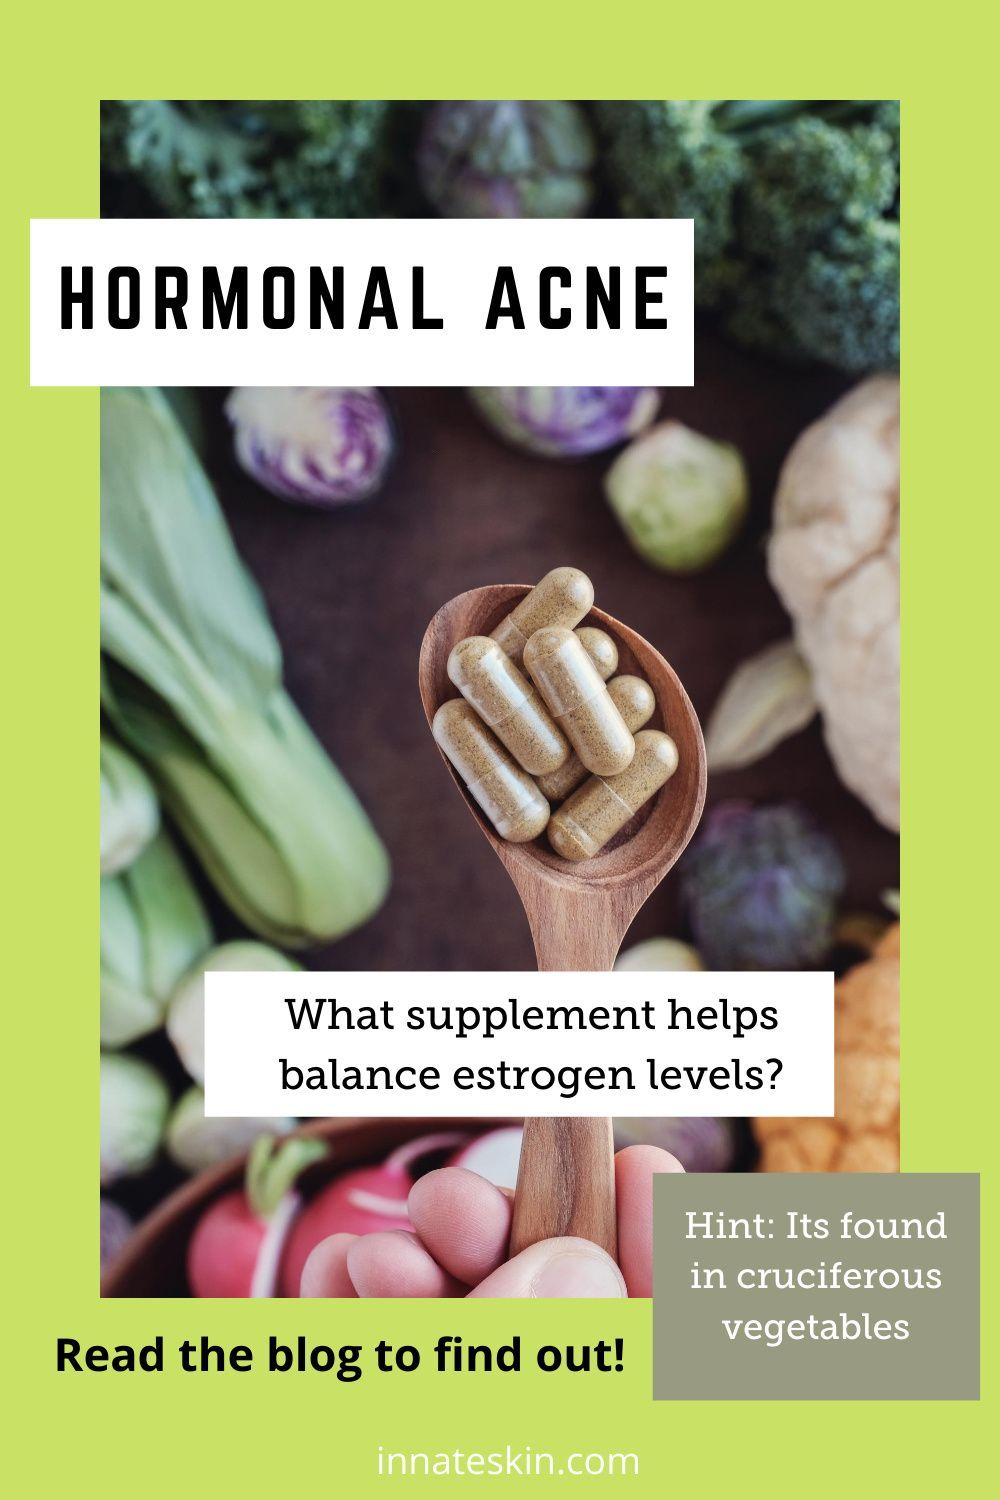 Innateskin says DIM's potential ability to metabolize and regulate estrogen may provide better hormonal balance and reduce acne.   #hormonalacne #hormonalacnetreatment #hormonalacnesupplement #hormonalacneremedies